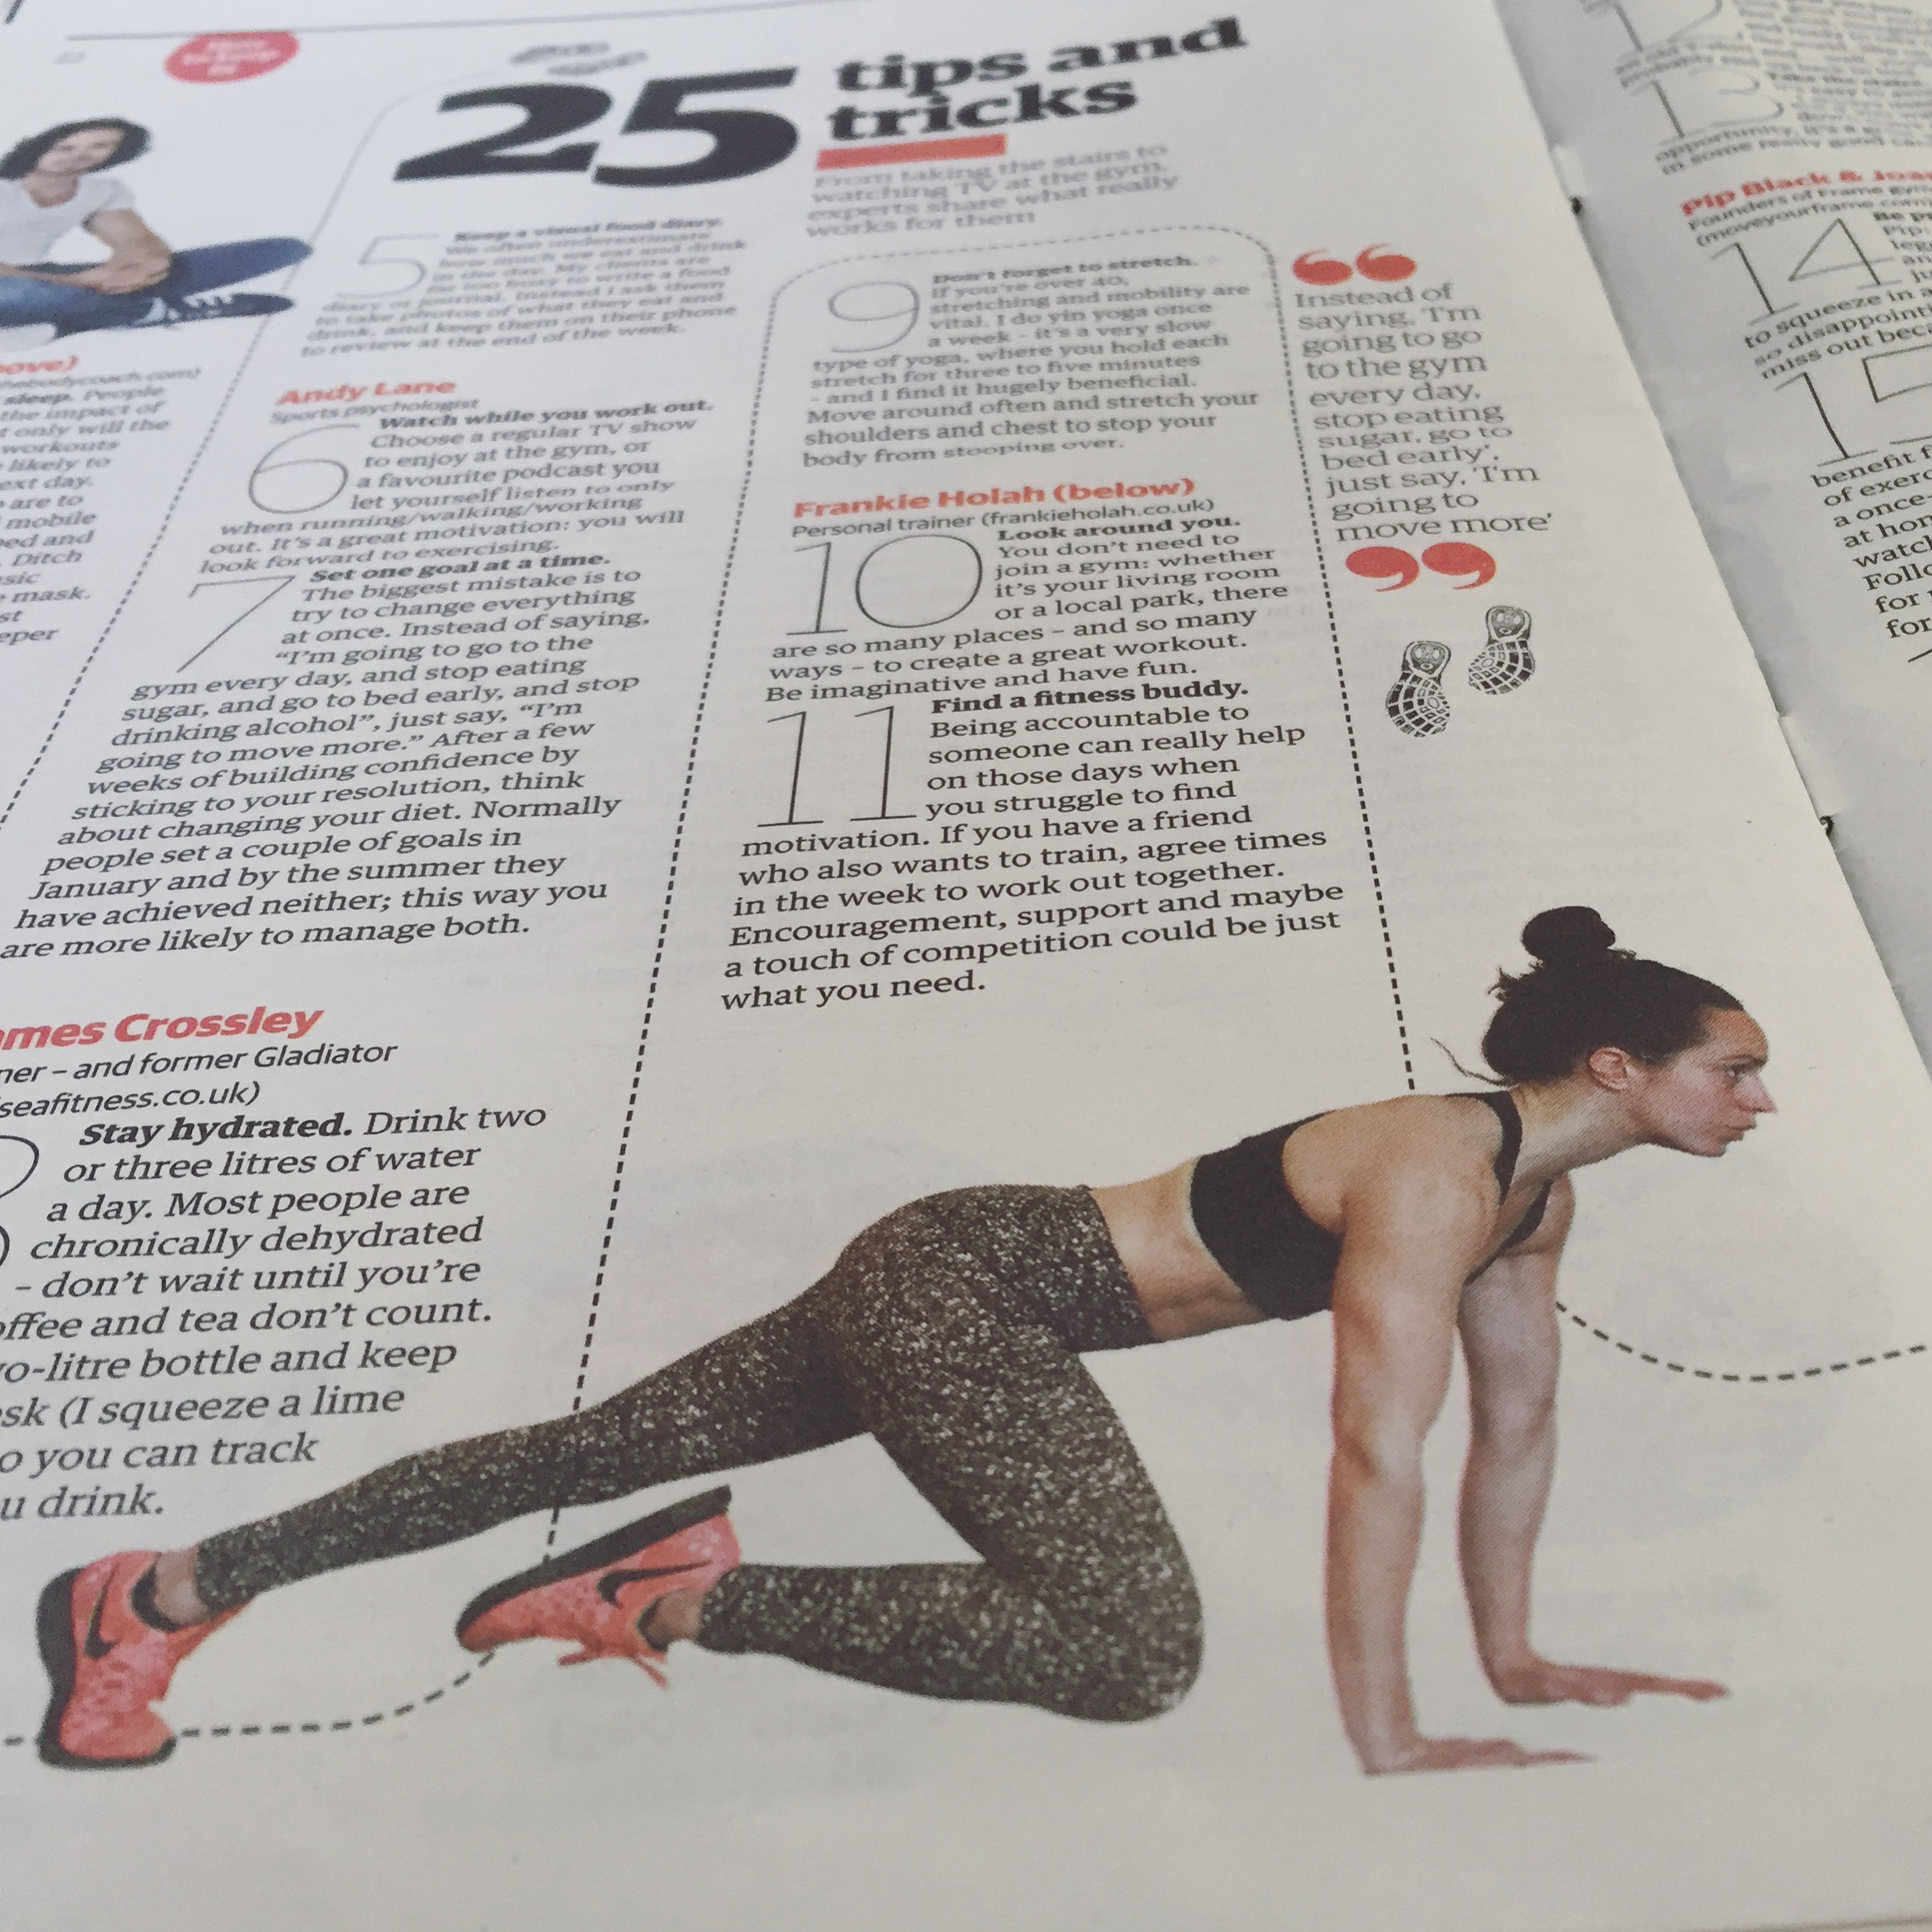 THE GUARDIAN - Top tips and tricks for staying fit. In print and online.READ MORE >>